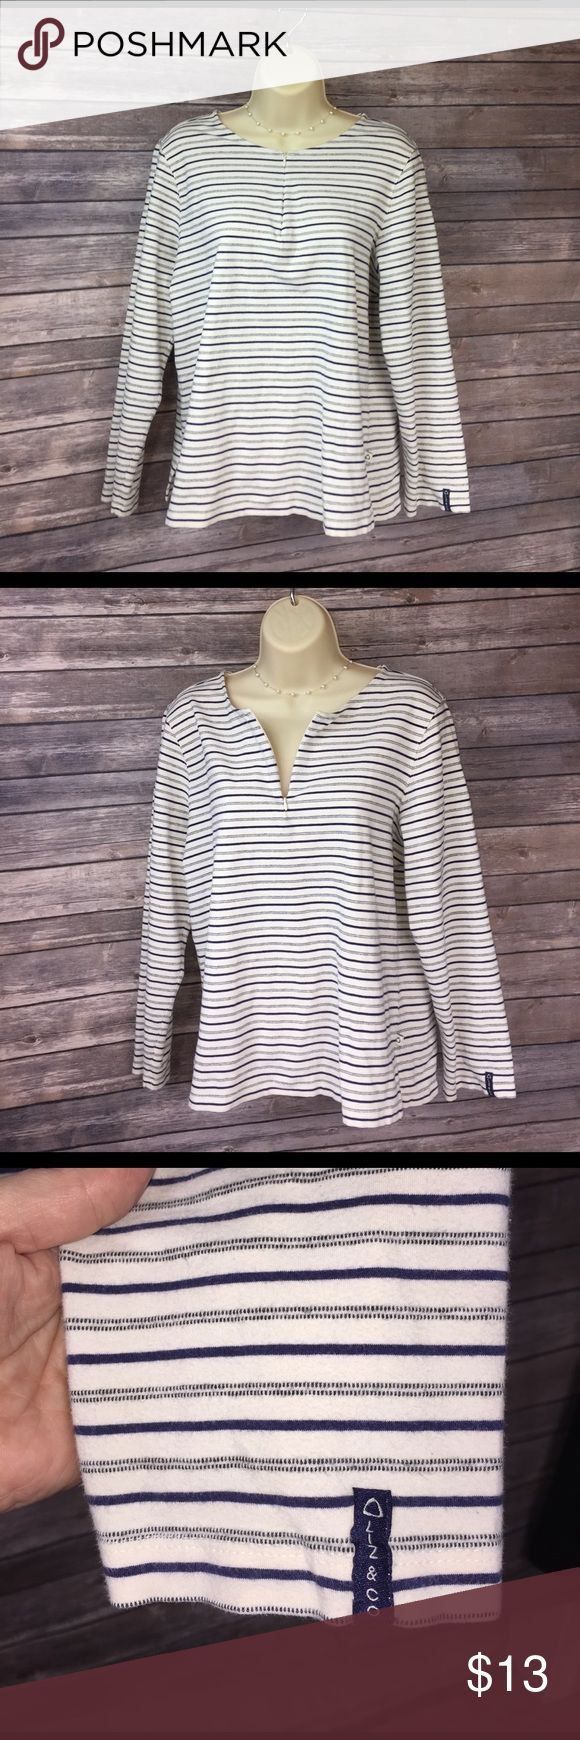 🔶Large Petite Liz   & Co Liz Clairborn Liz Clairborne Petite shirt with zipper.  GUC.    🛍 Bundle 2 or more items and receive a 25% discount automatically!!  🛍 Liz Claiborne Tops